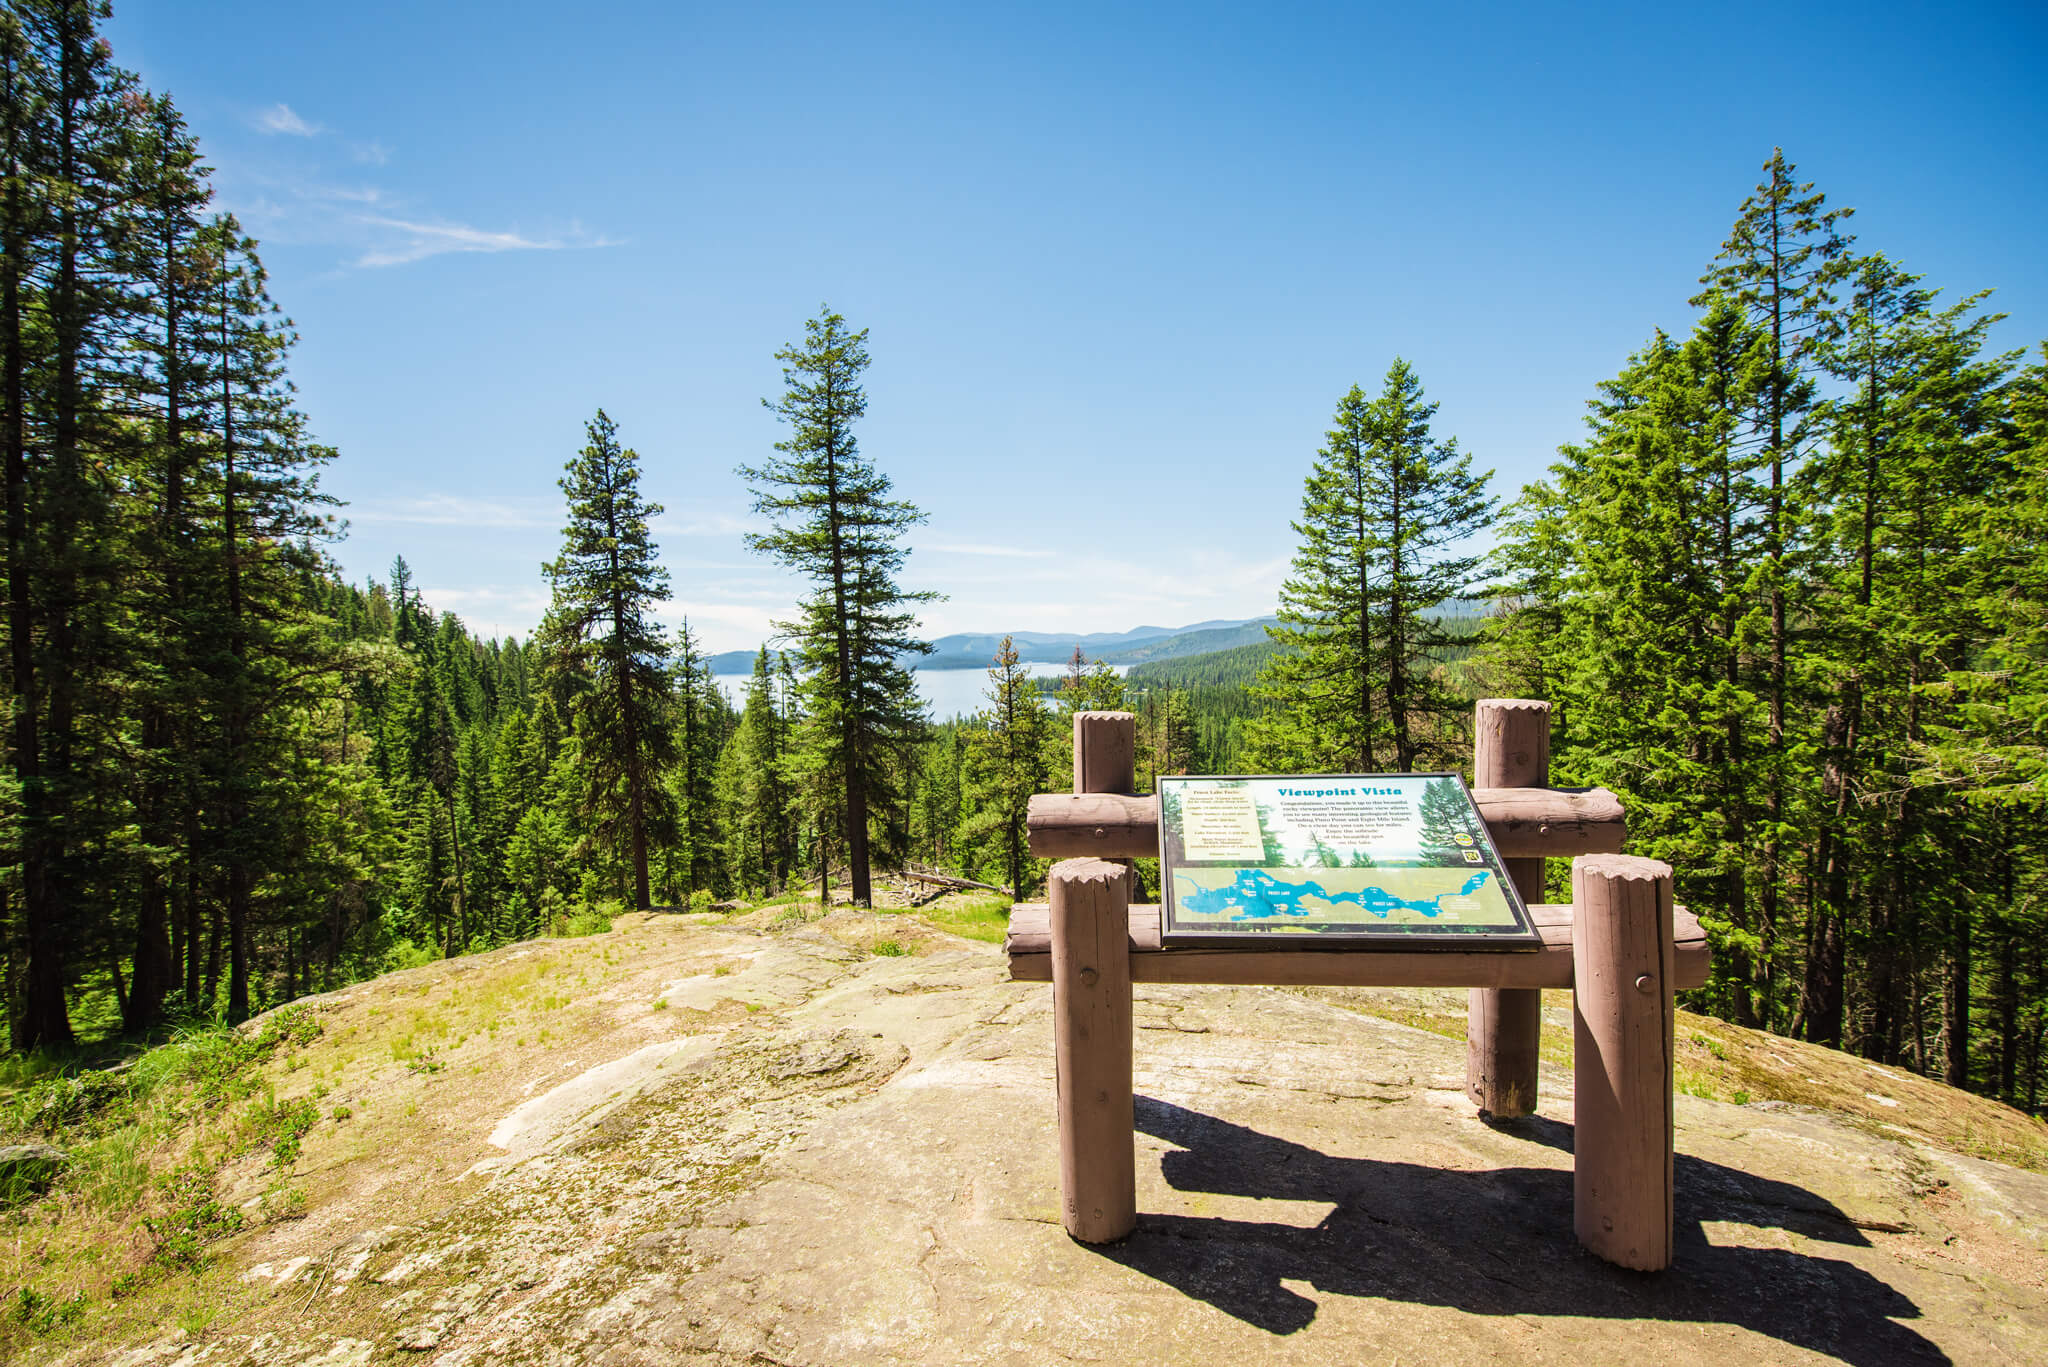 Viewpoint Vista, Priest Lake State Park, Coolin. Photo Credit: Idaho Tourism